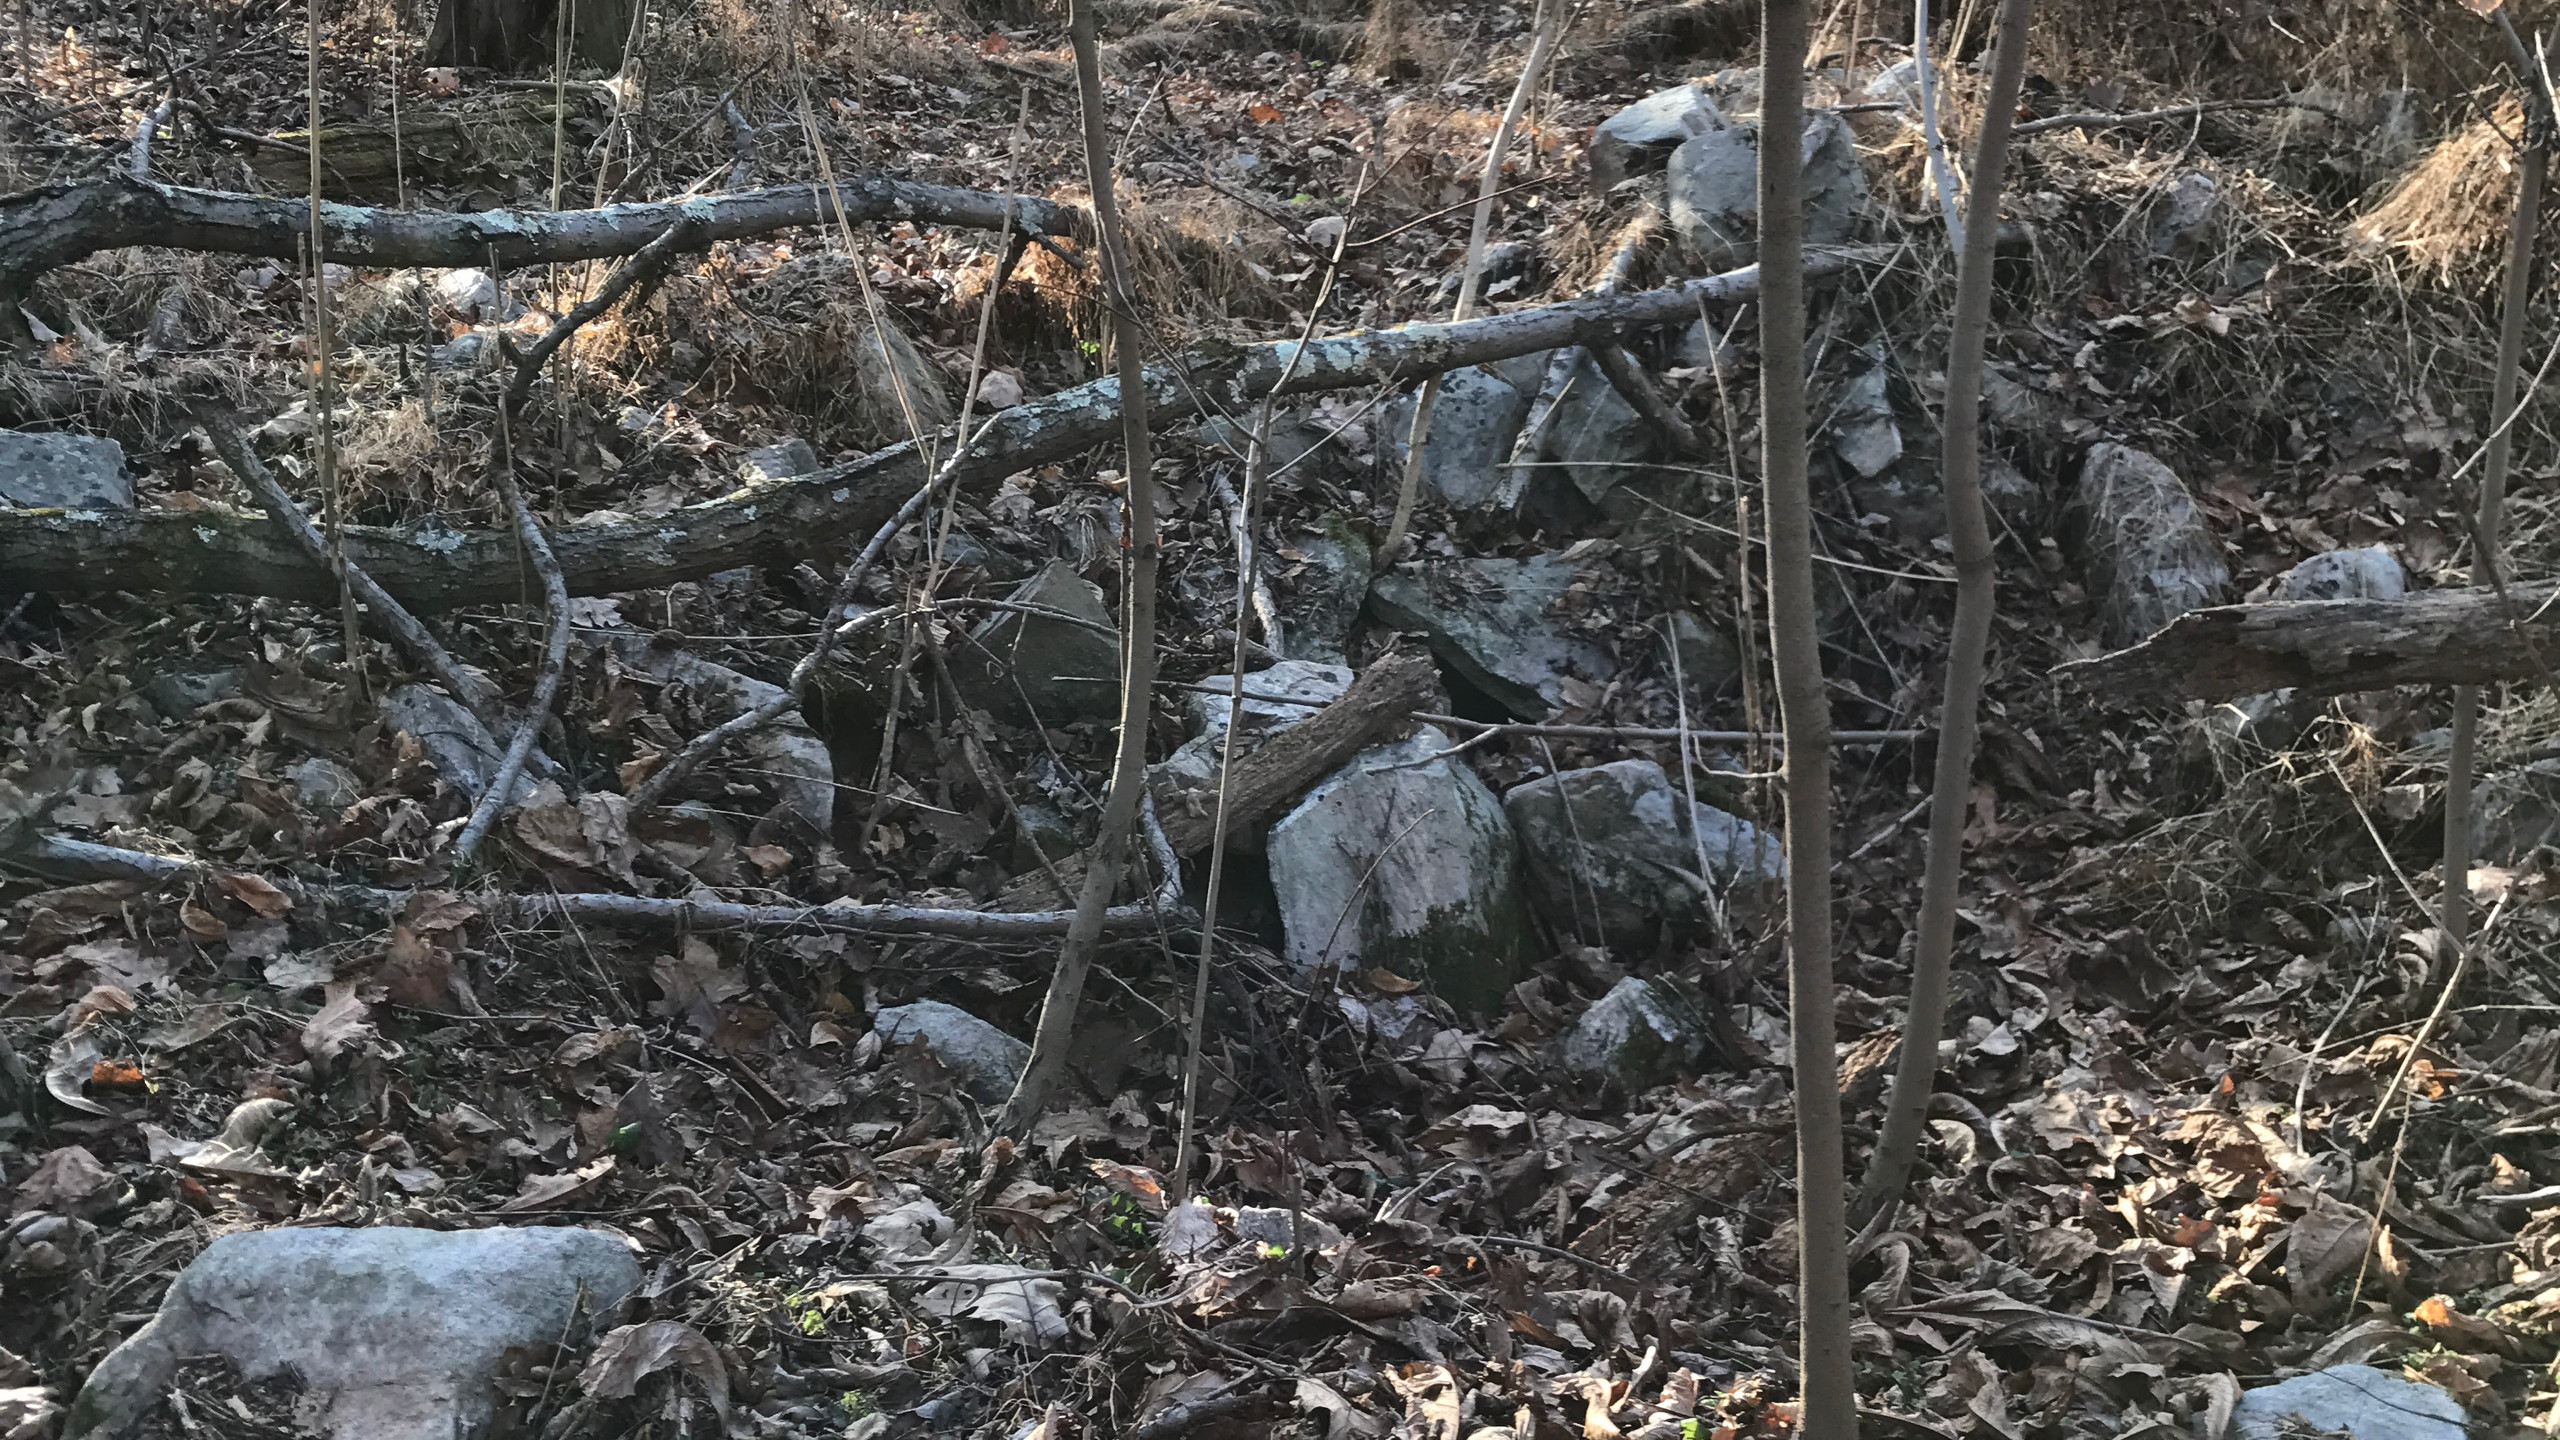 Remnants of a chimney